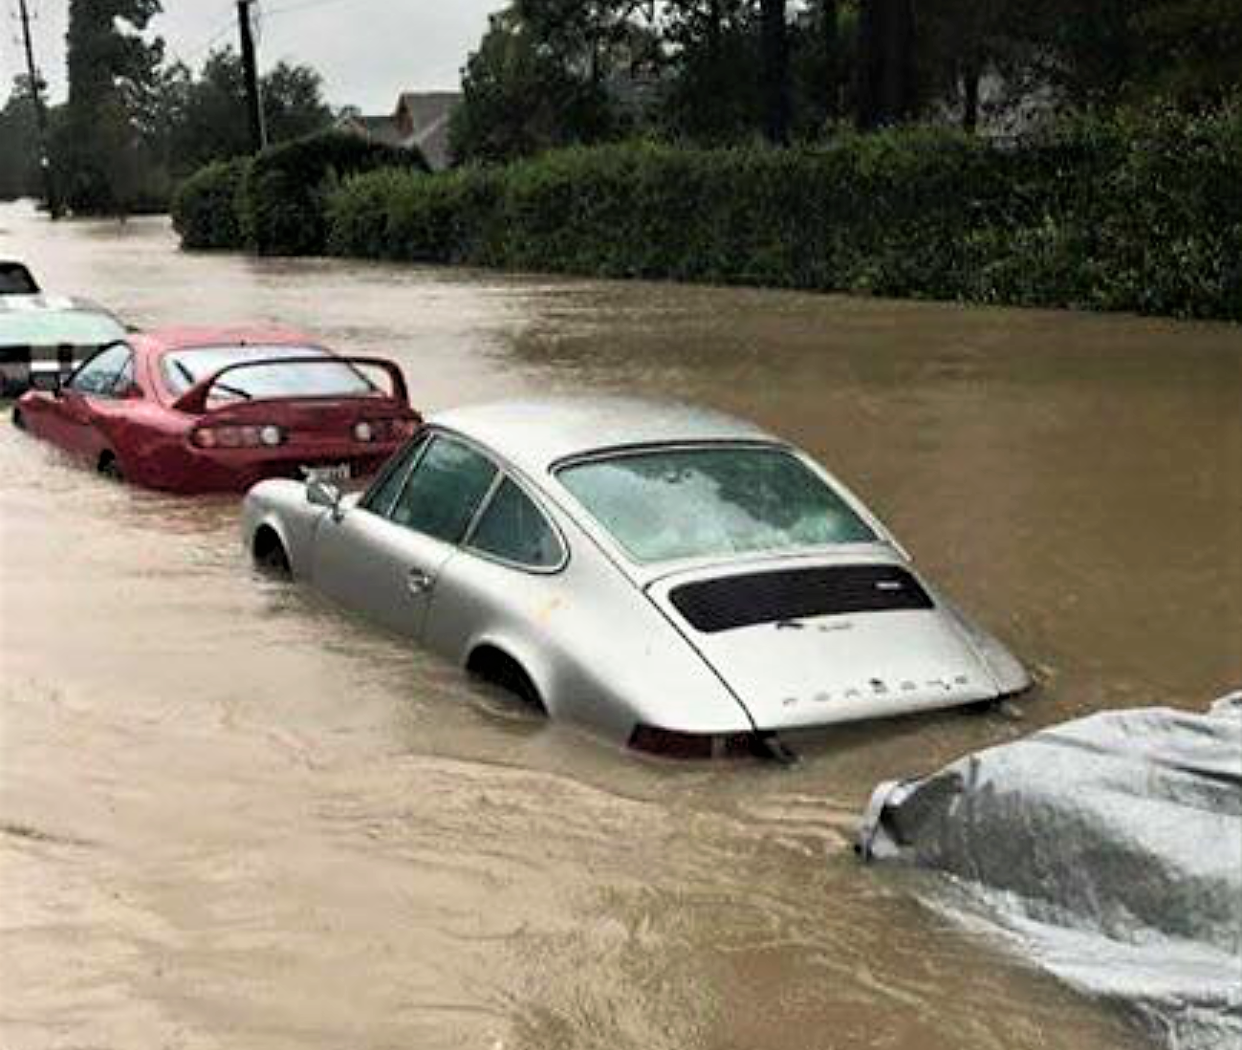 Flood victims: Thousands of classics likely ruined by Harvey ...